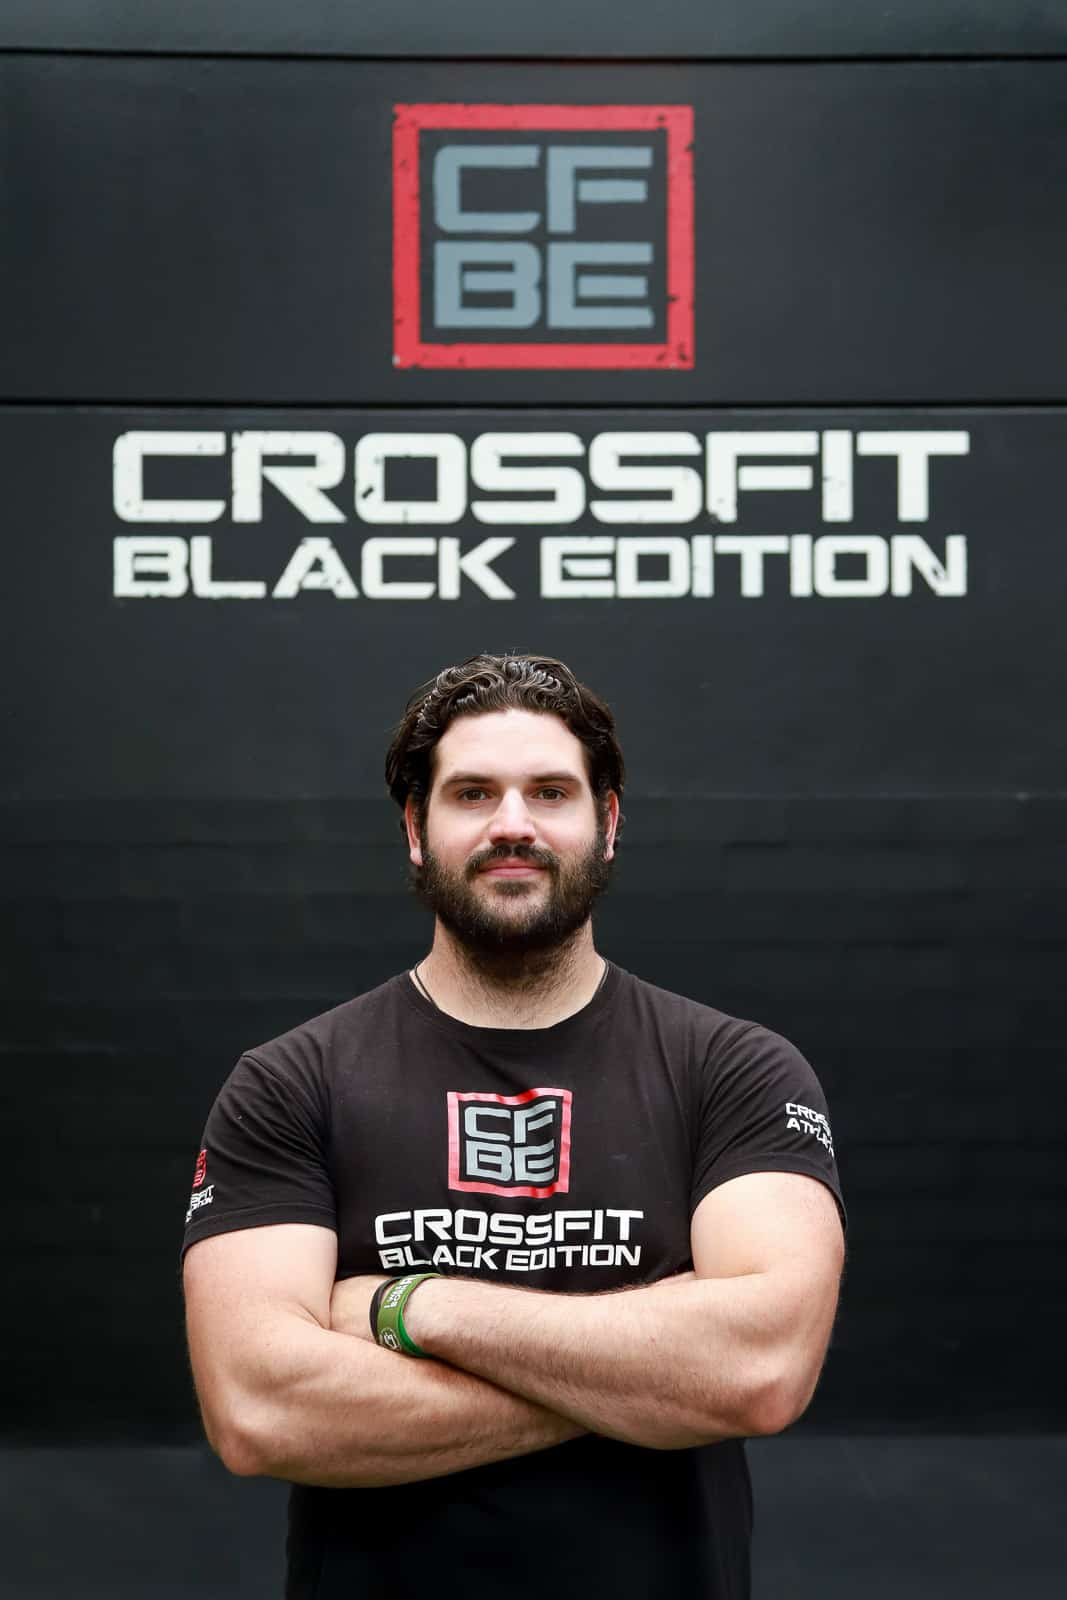 Vasco Duarte Coach at CrossFit Black Edition